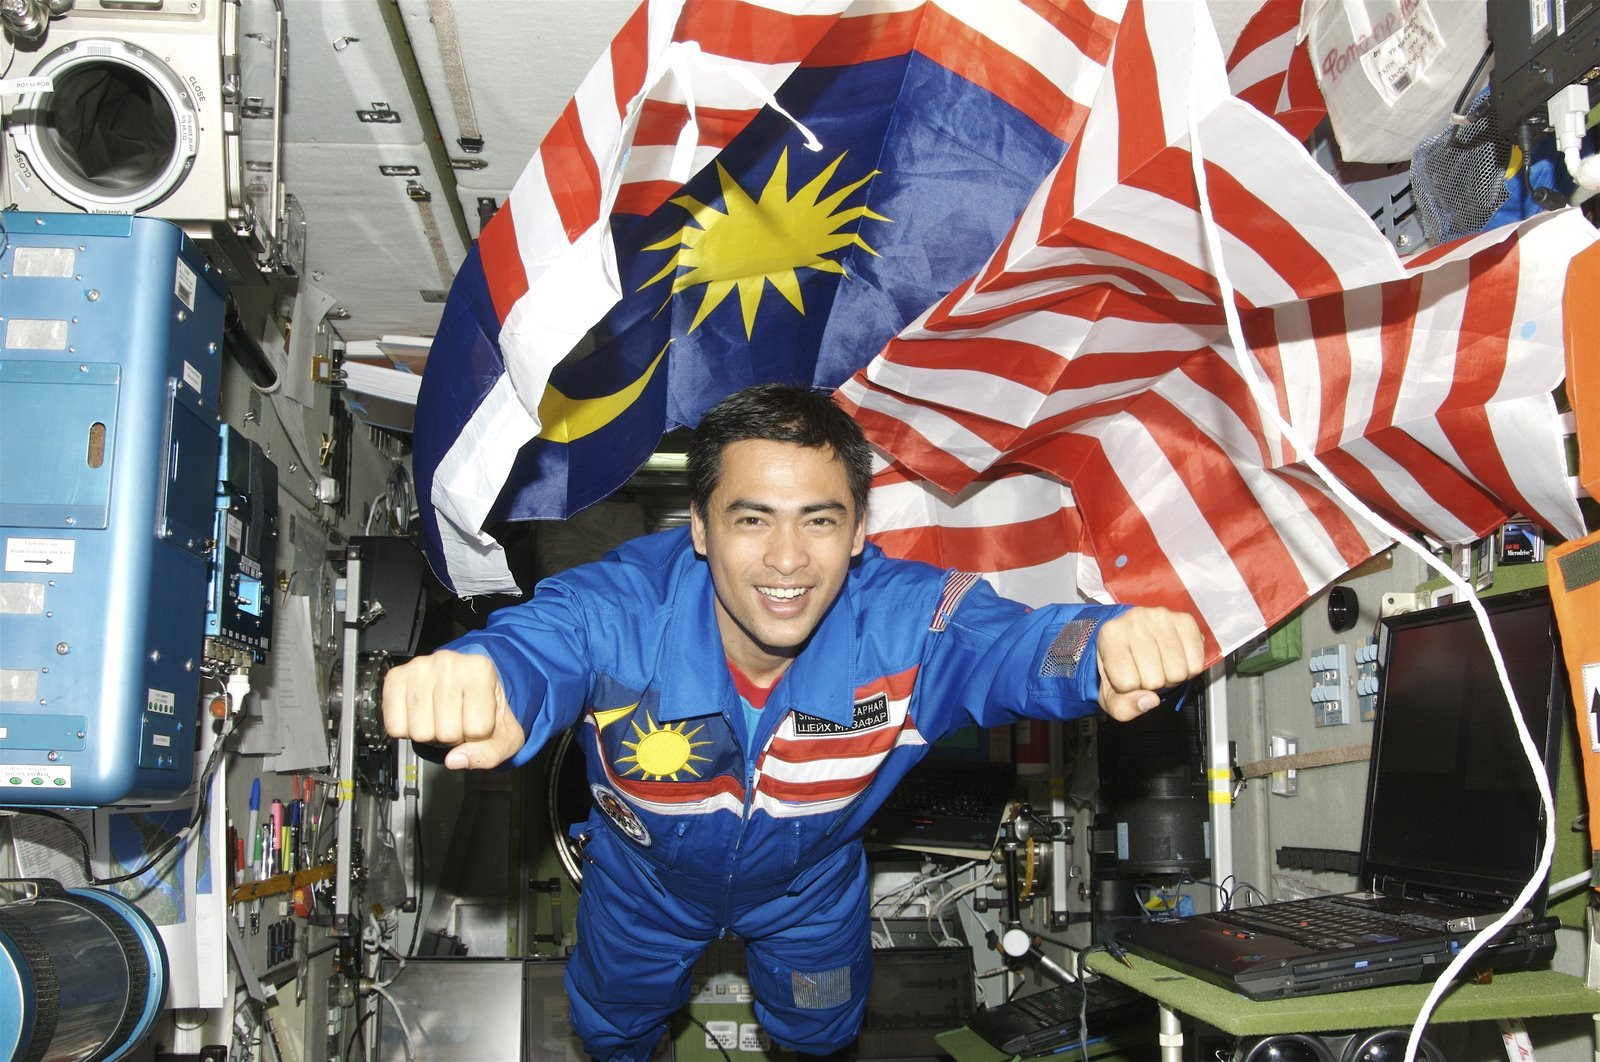 Image from 1malaysia.com.my